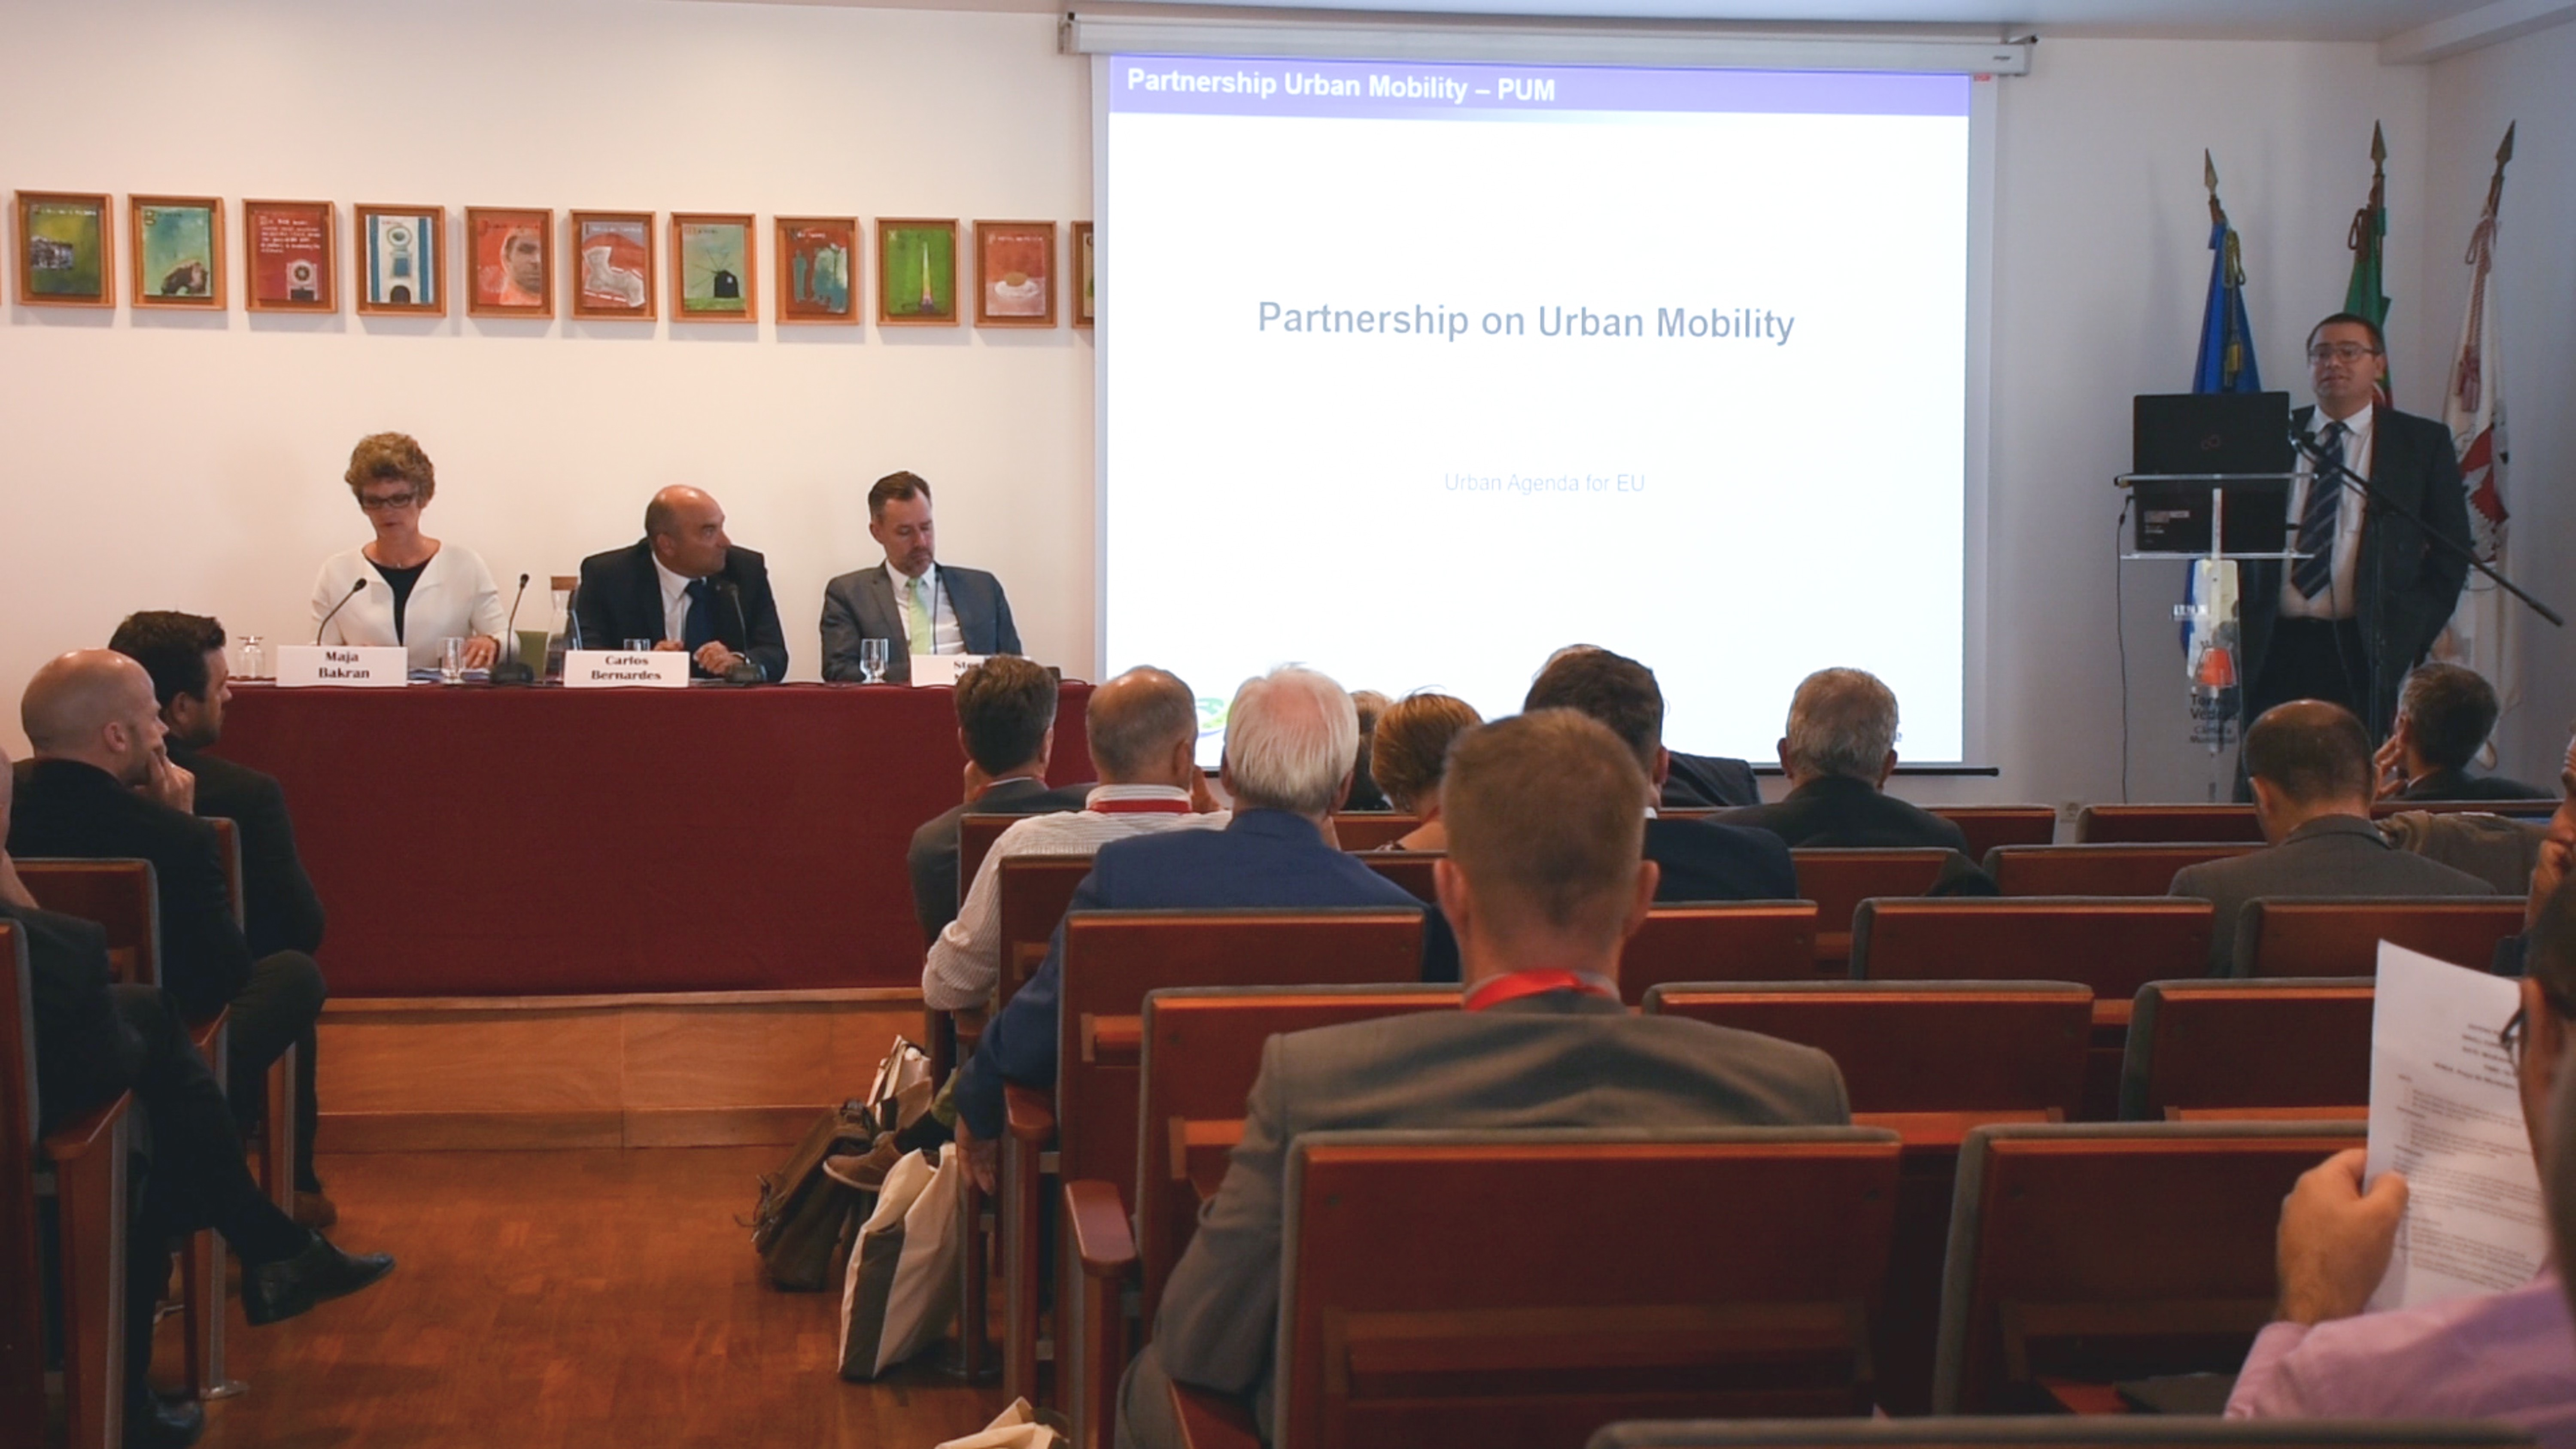 Raul Gomes, Transport and Traffic Management Division of Torres Vedras, presenting the Partnership on Urban Mobility